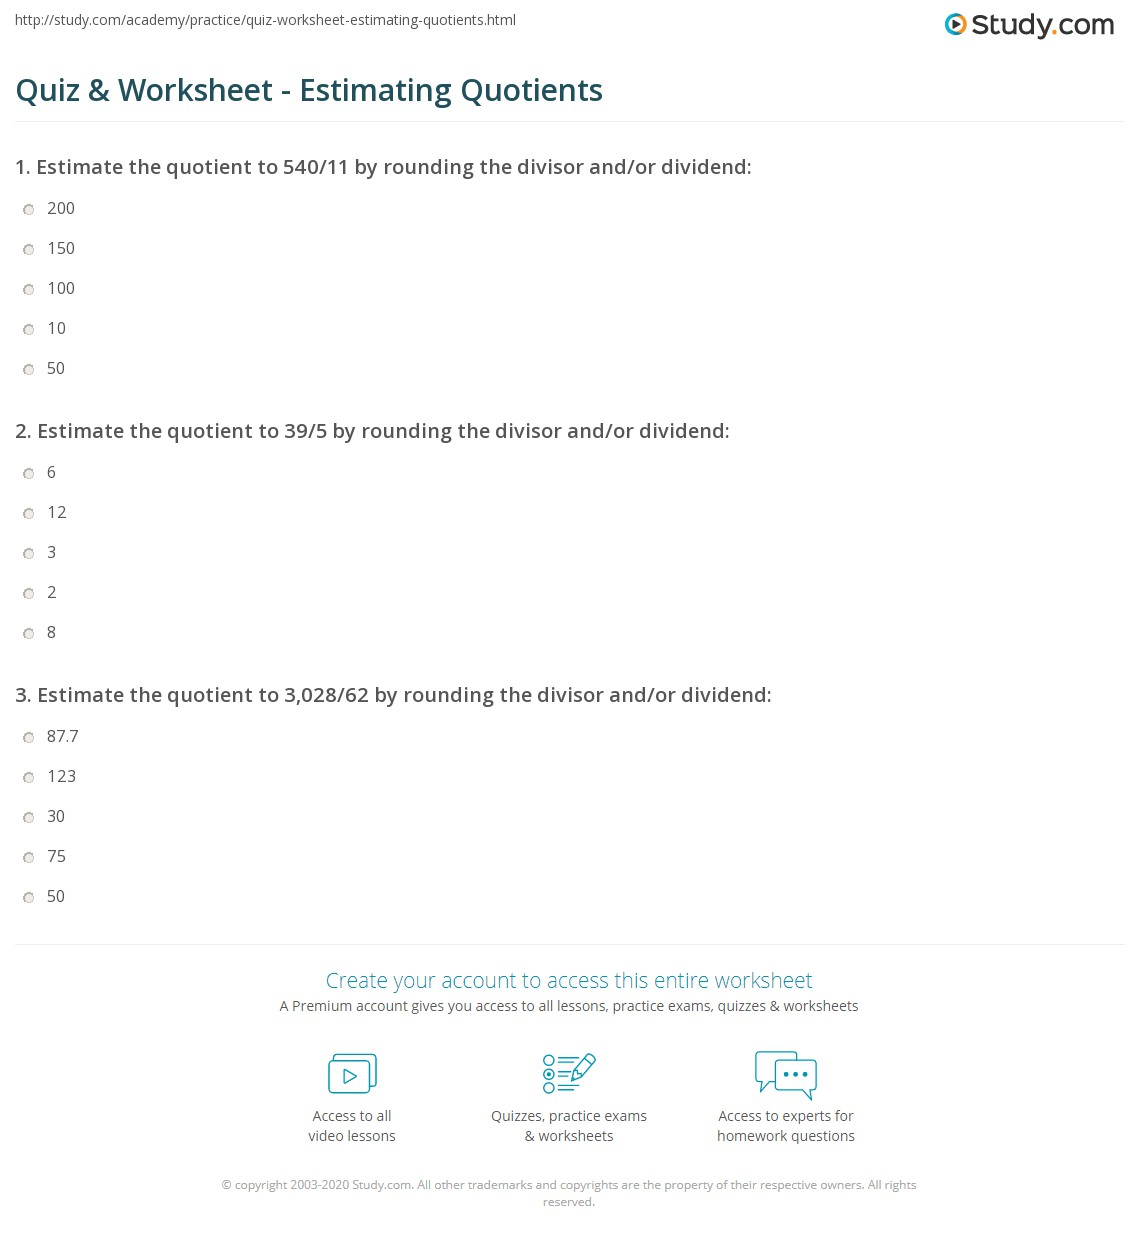 Worksheets Estimating Quotients Worksheets quiz worksheet estimating quotients study com print how to estimate worksheet